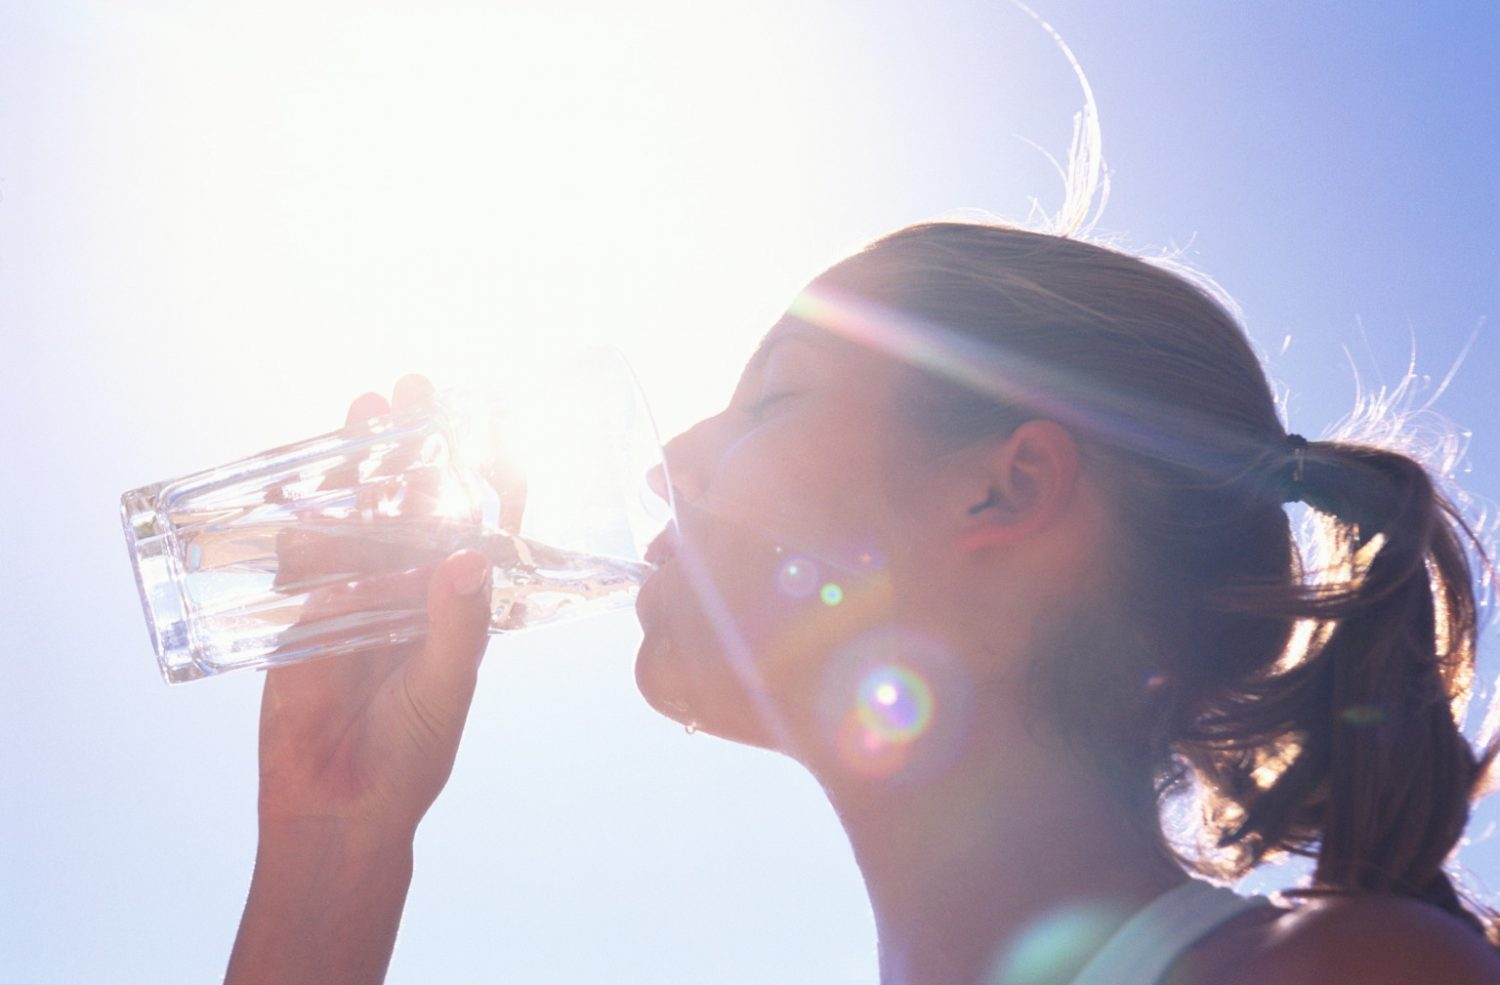 WOMAN DRINKING WATER, CLOSE UP